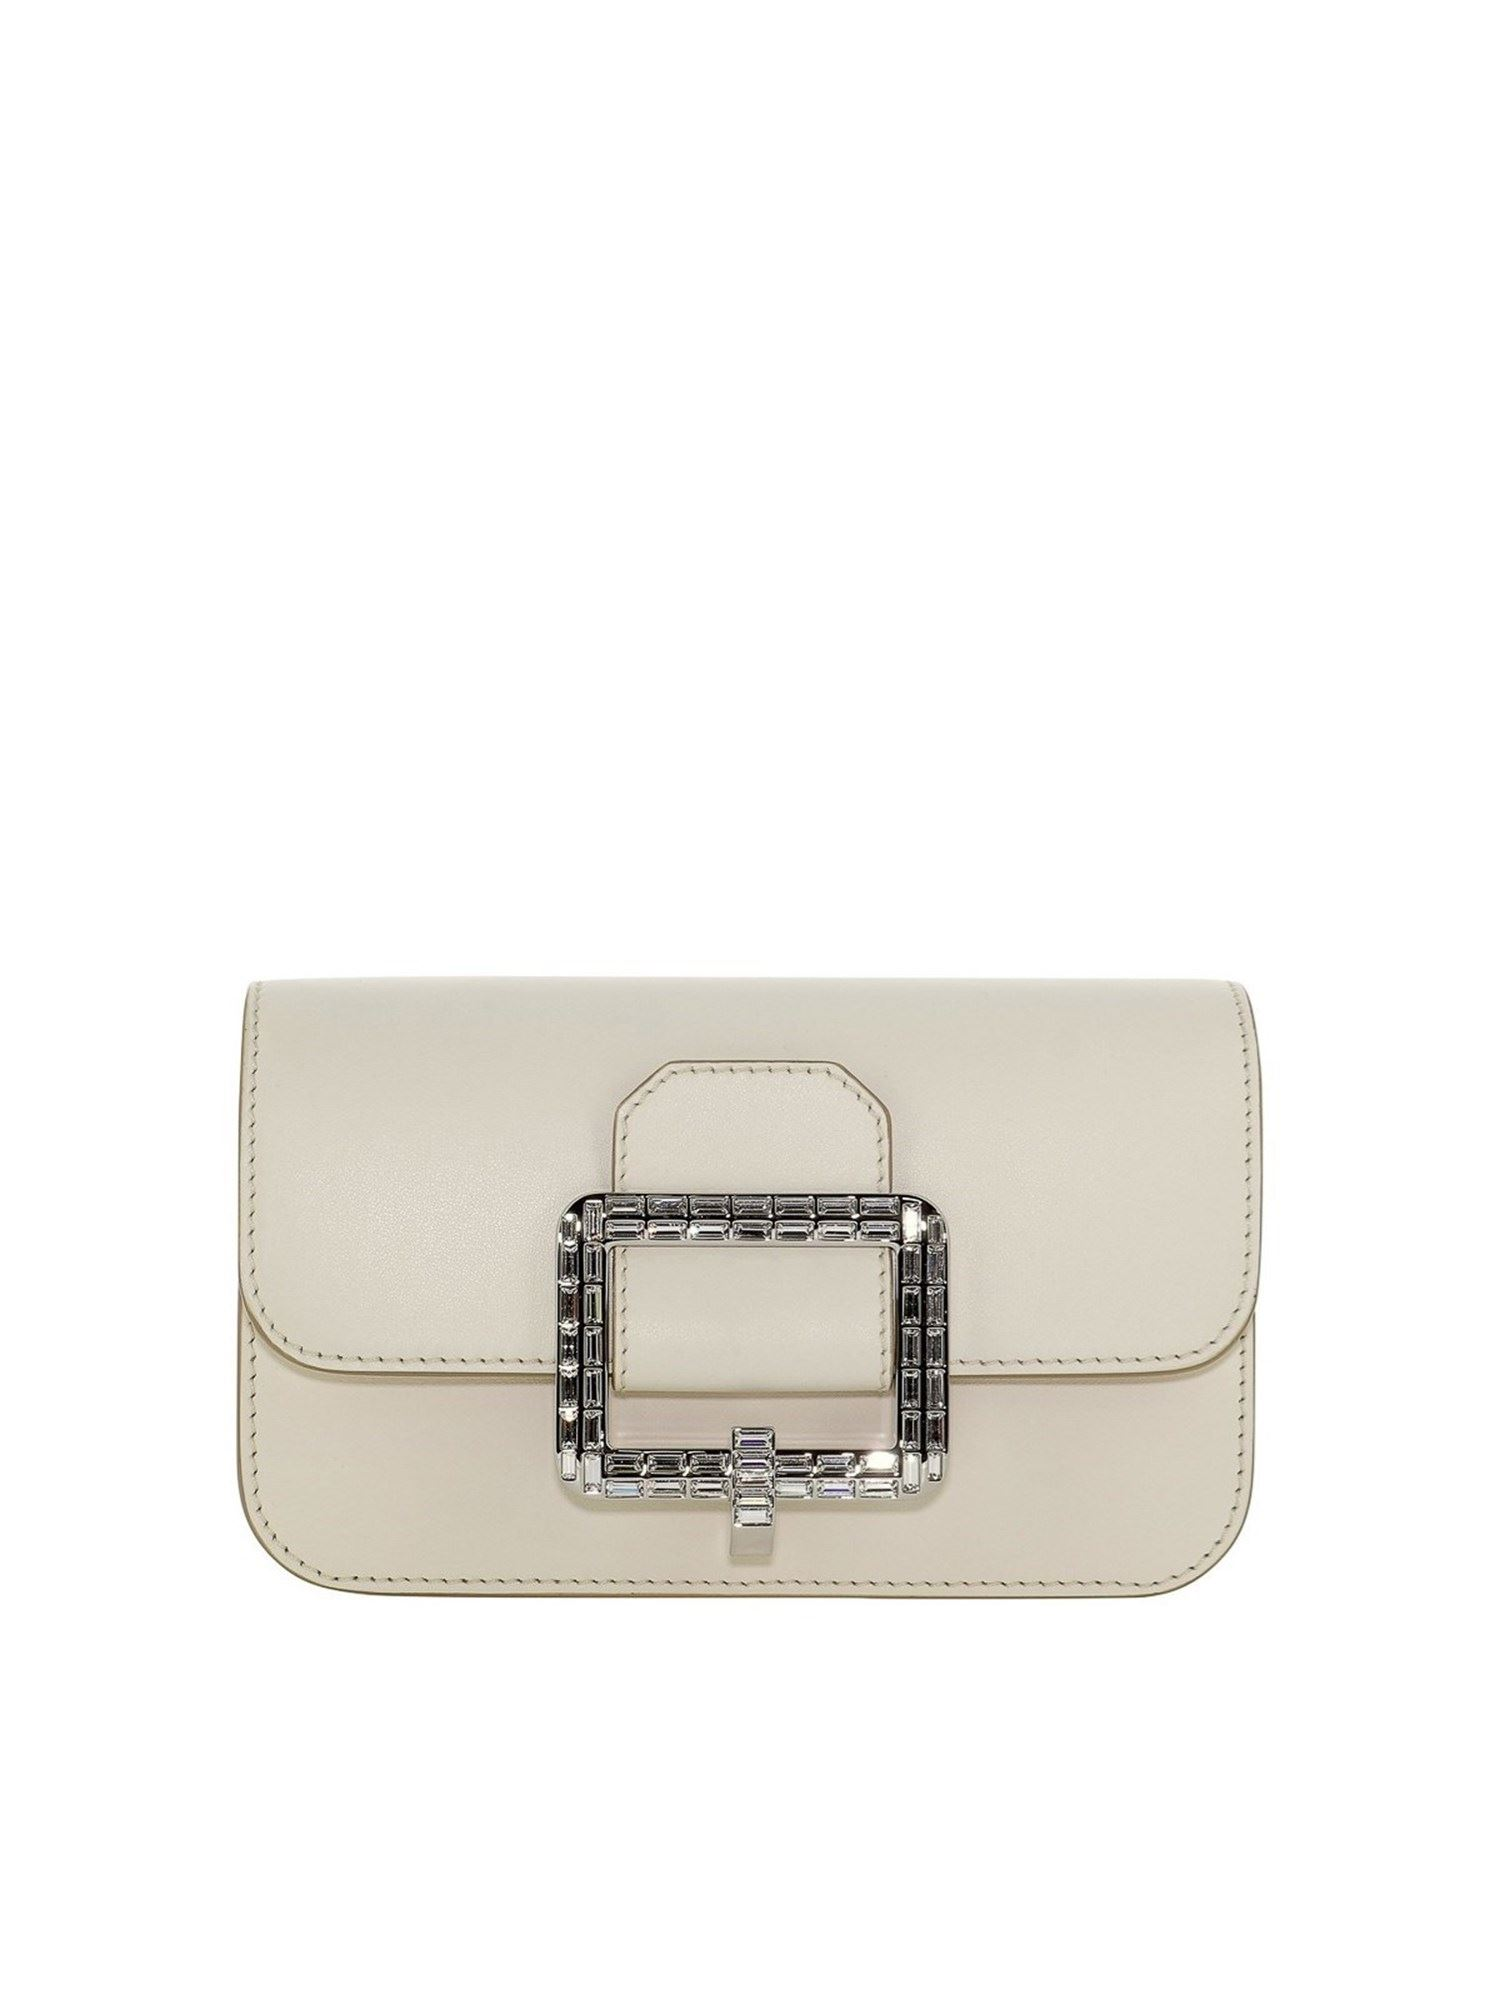 Bally JANELLE BELT BAG IN WHITE